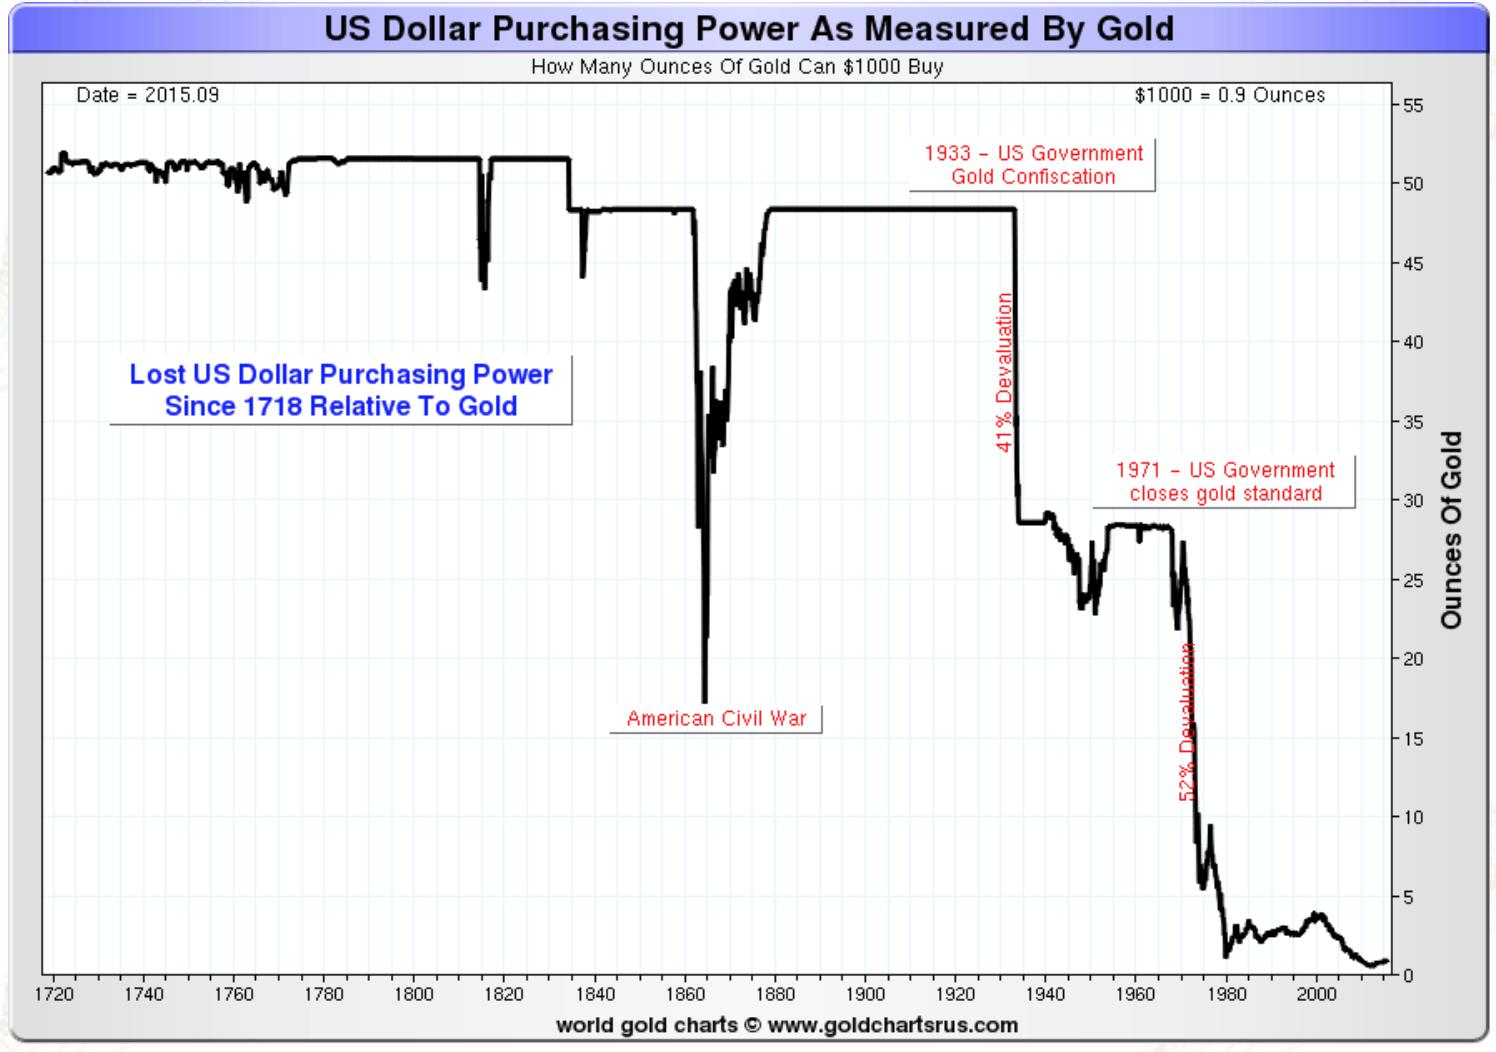 US Dollar Purchasing Power As Measured By Gold